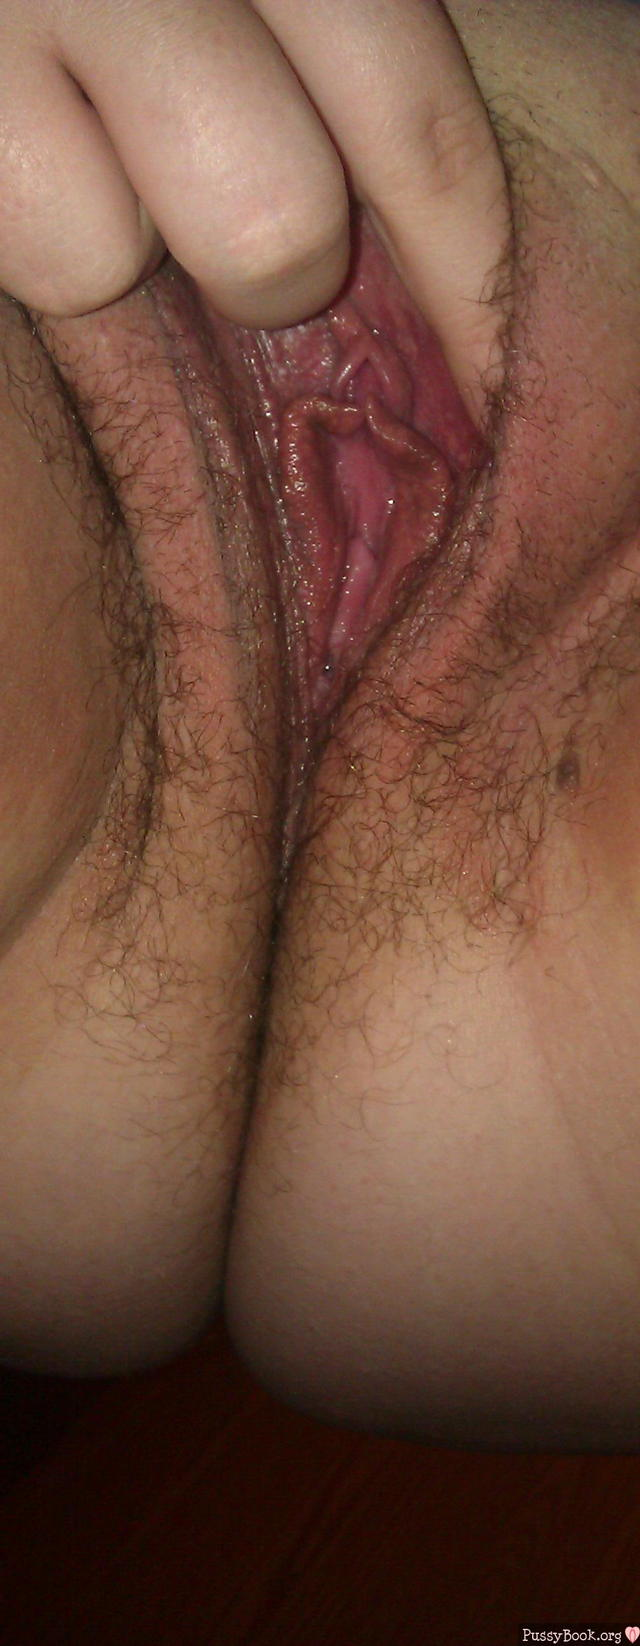 mature naked females pussy ass female hairy nude mature spreading walls indonesian